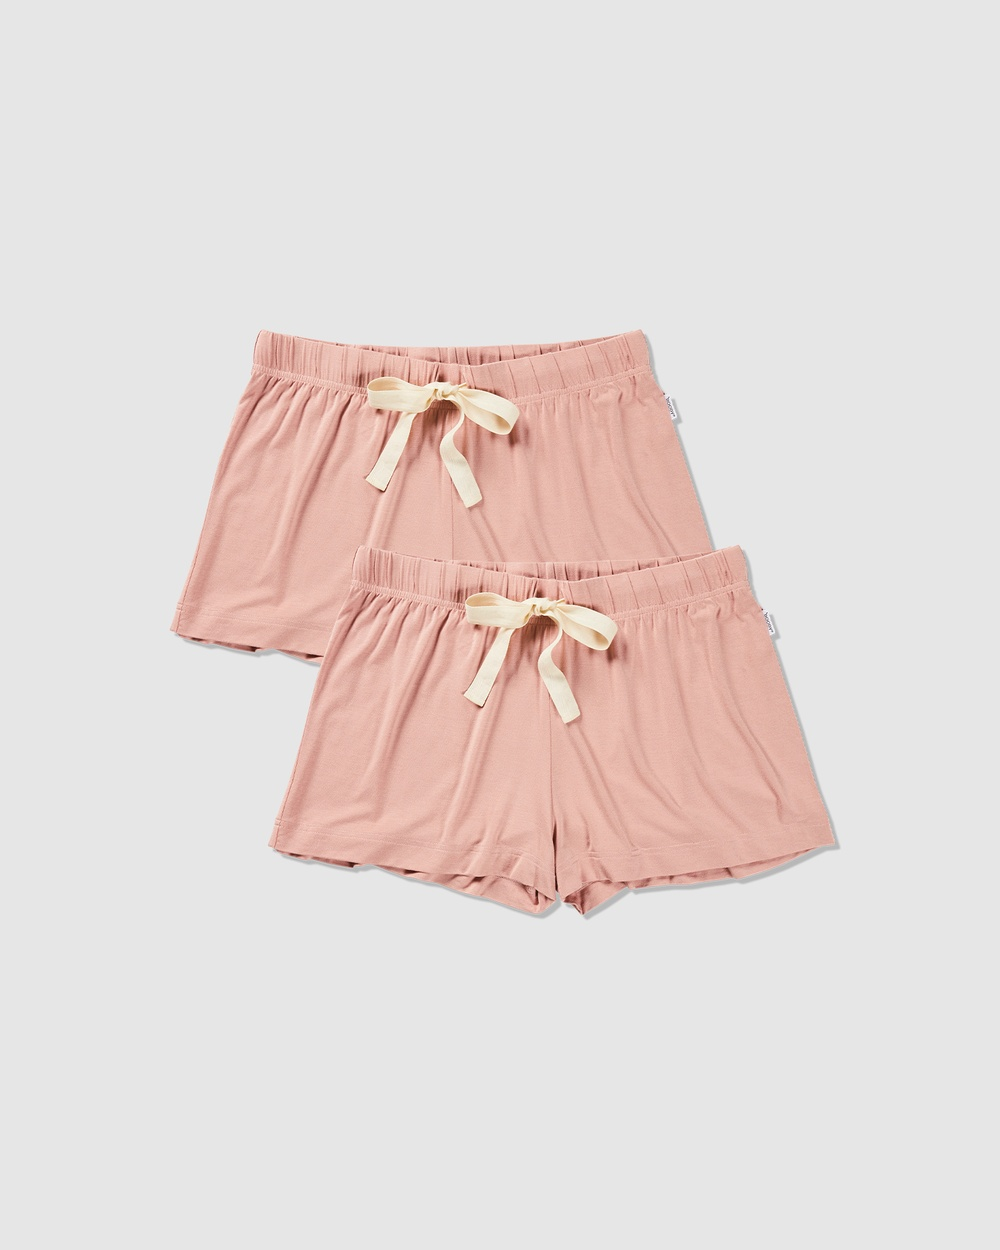 2 Pack Goodnight Sleep Shorts  Dusty Pink - Sleepwear